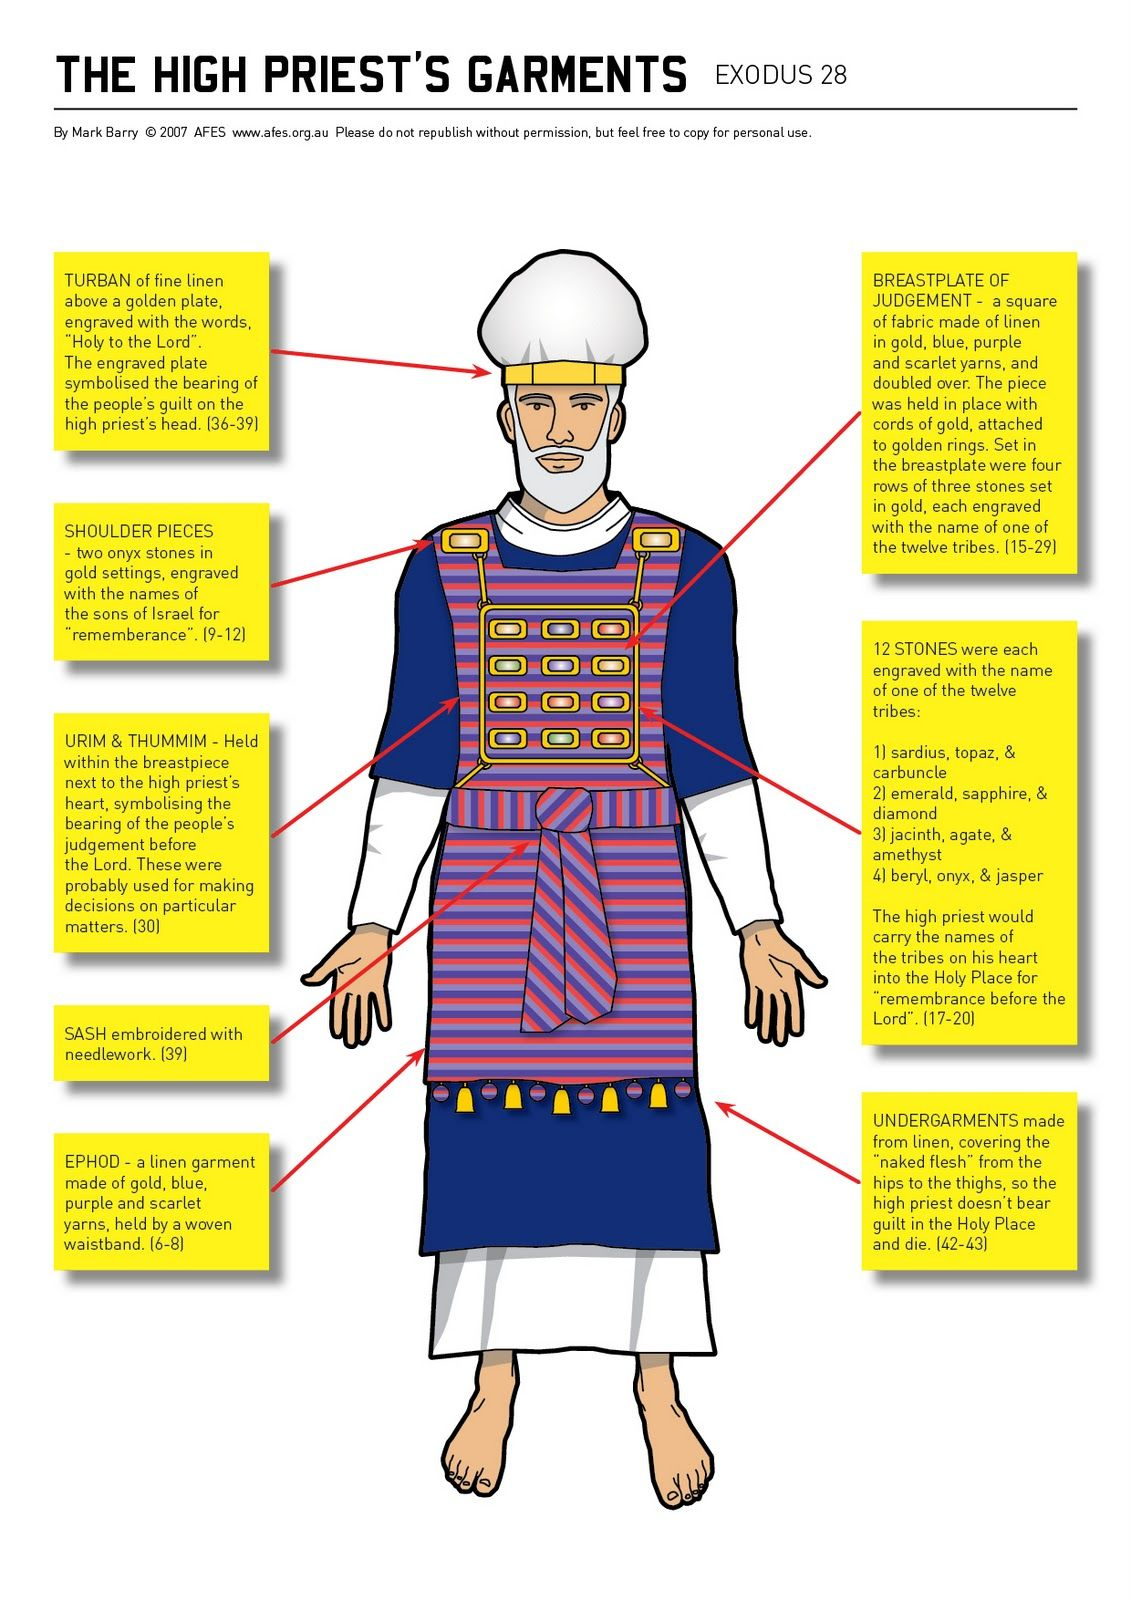 garment worn by priest priests garments